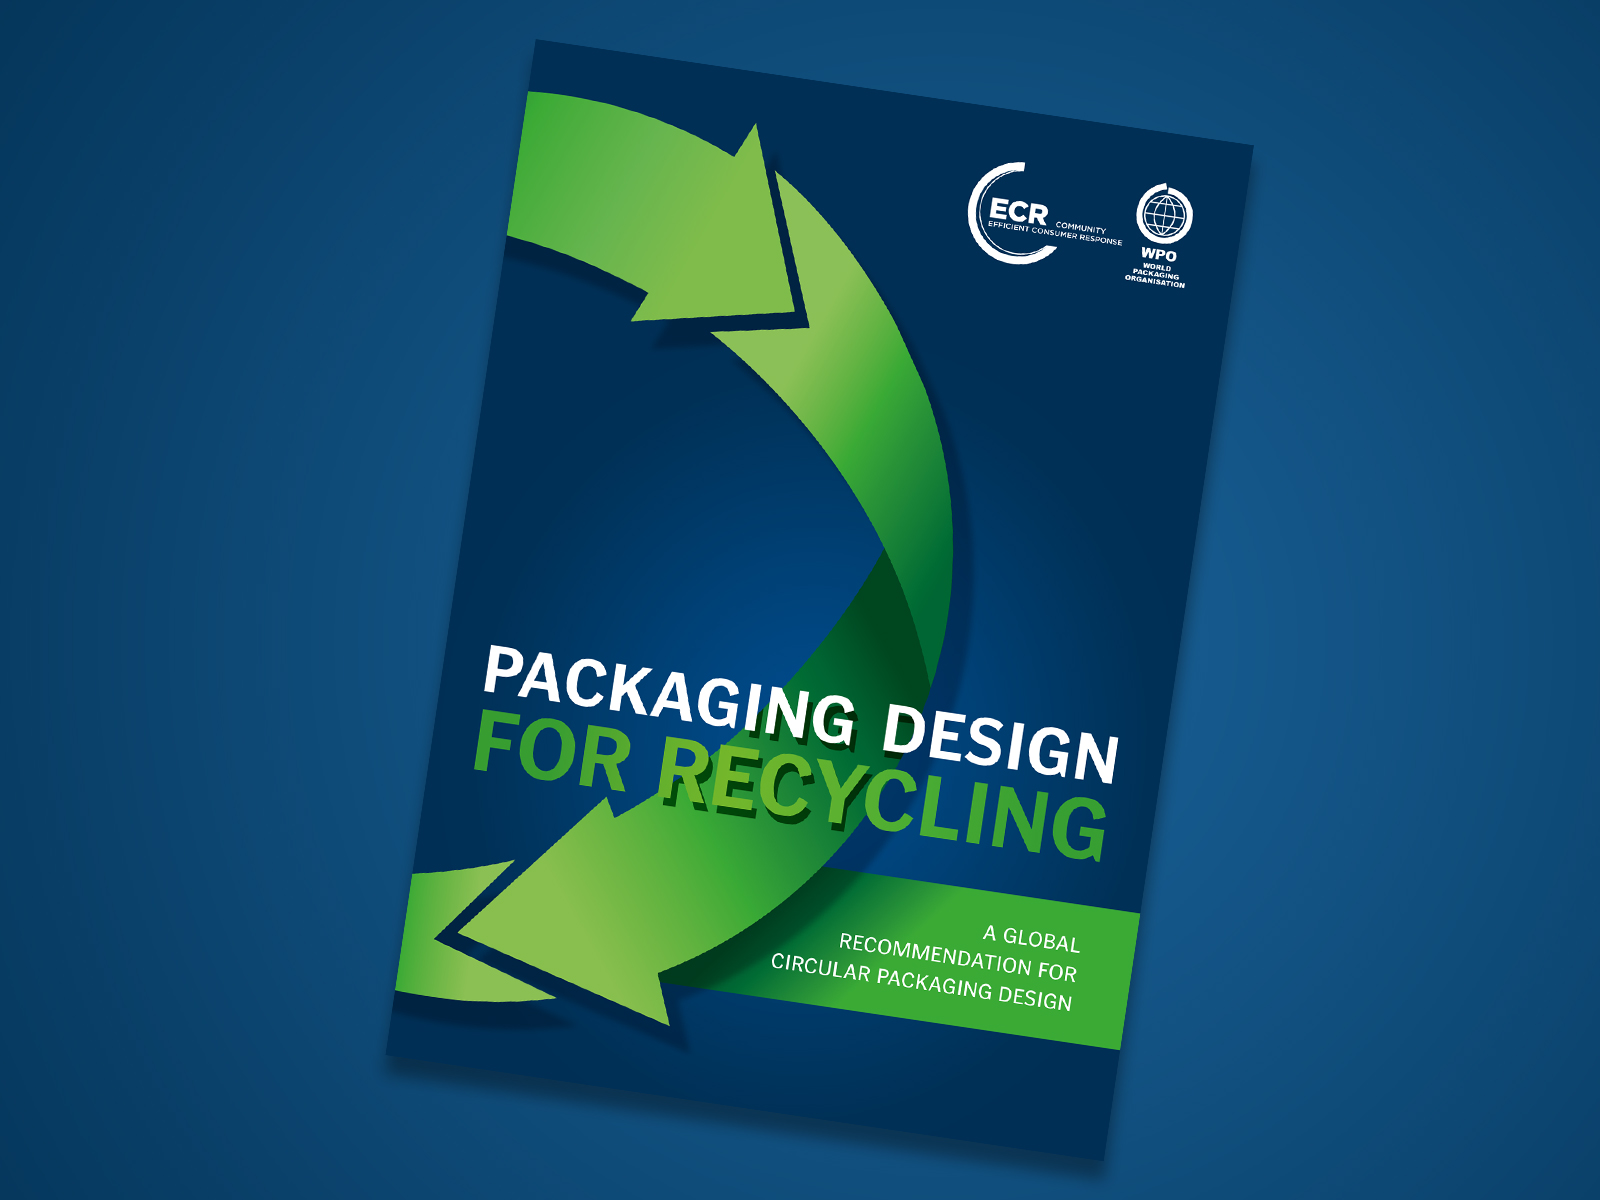 Global Packaging Design for Recycling Guide for Retailers & Manufacturers